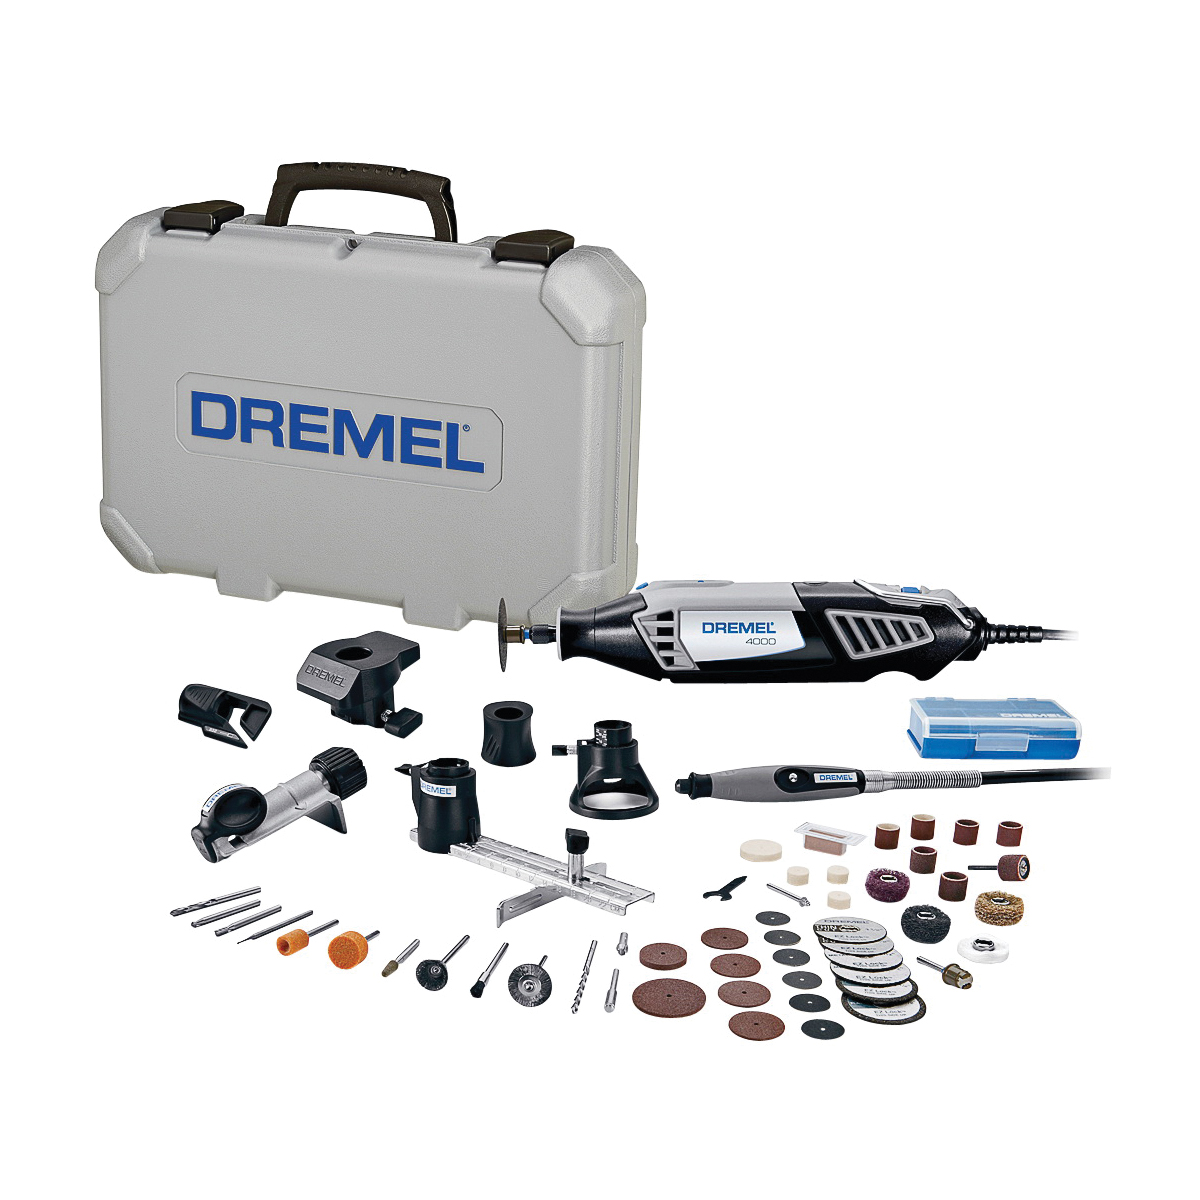 Picture of DREMEL 4000-6/50 Rotary Tool Kit, 120 V, 1.6 A, 1/8 in Chuck, Keyed Chuck, 5000 to 35,000 rpm Speed